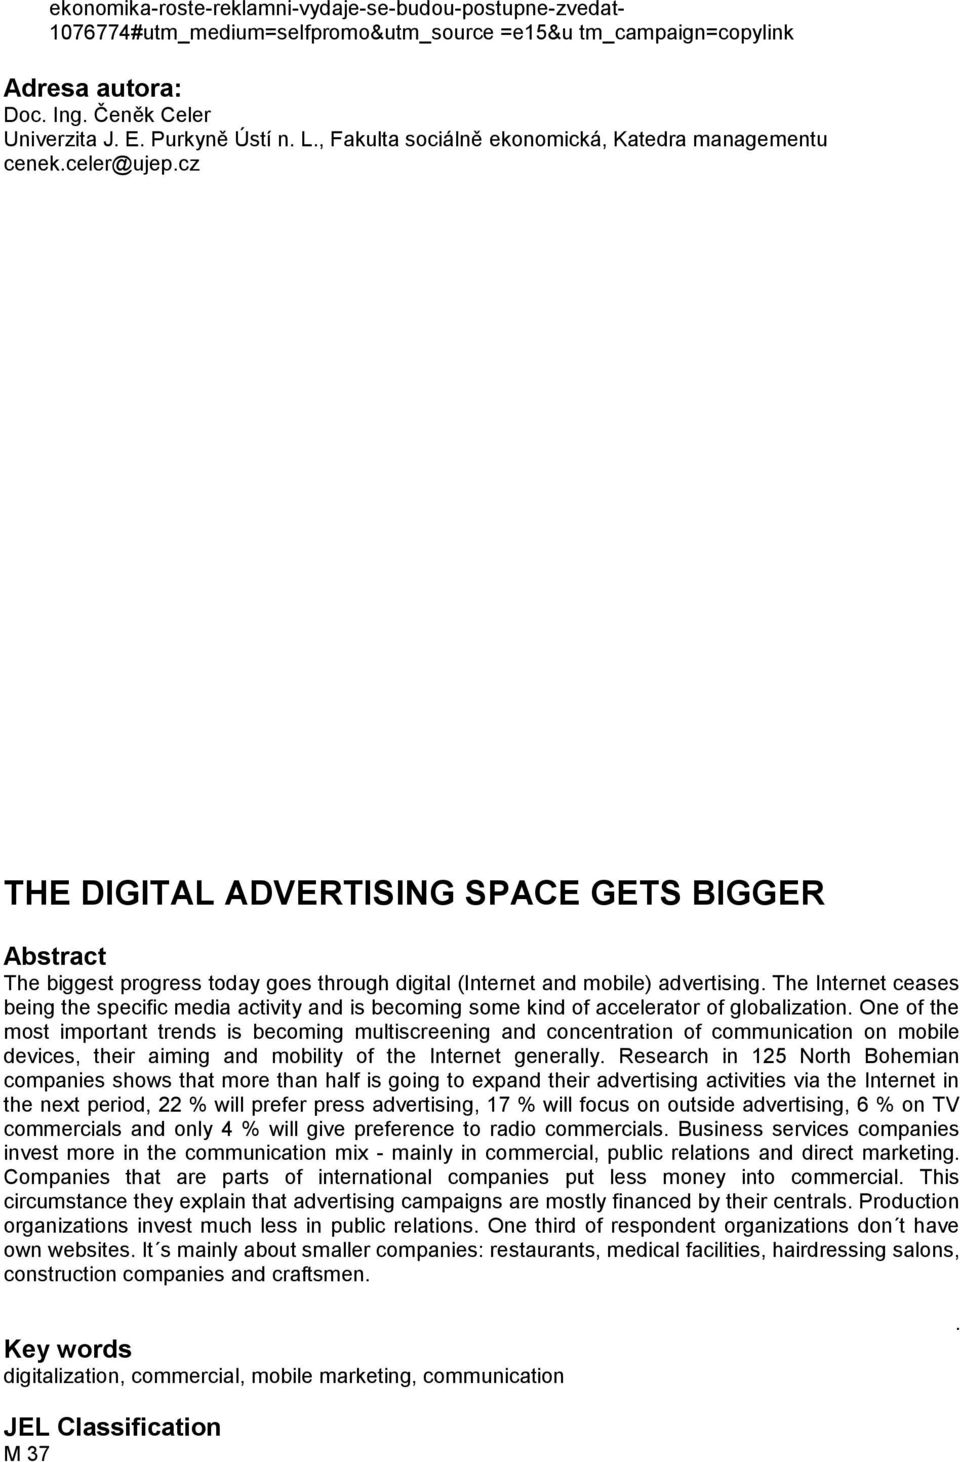 cz THE DIGITAL ADVERTISING SPACE GETS BIGGER Abstract The biggest progress today goes through digital (Internet and mobile) advertising.